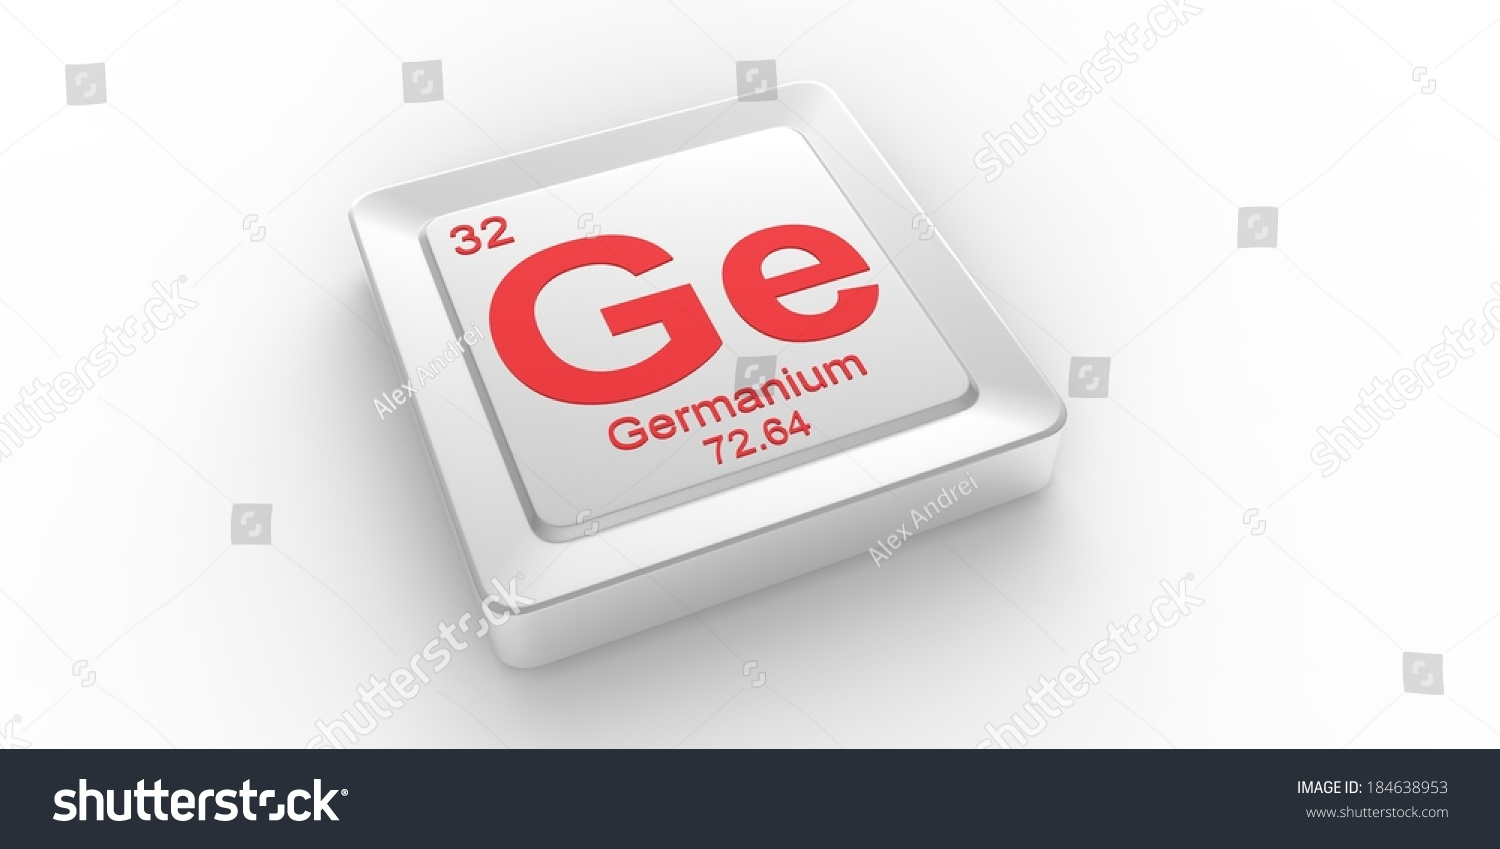 Ge symbol 32 material germanium chemical stock illustration ge symbol 32 material for germanium chemical element of the periodic table biocorpaavc Gallery